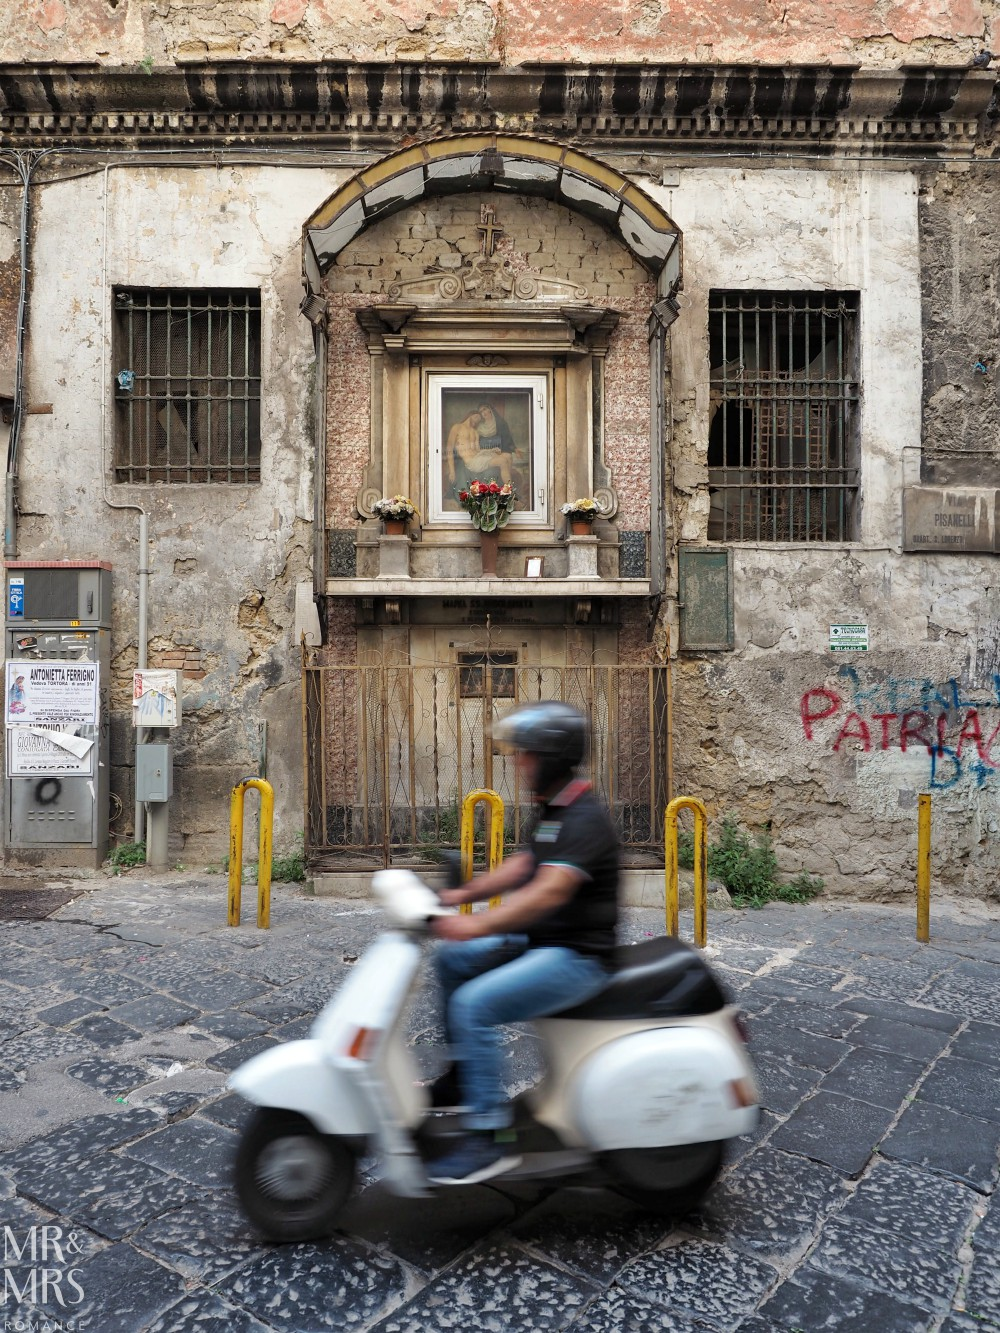 Hotel Piazza Bellini review - Naples street scene with moped